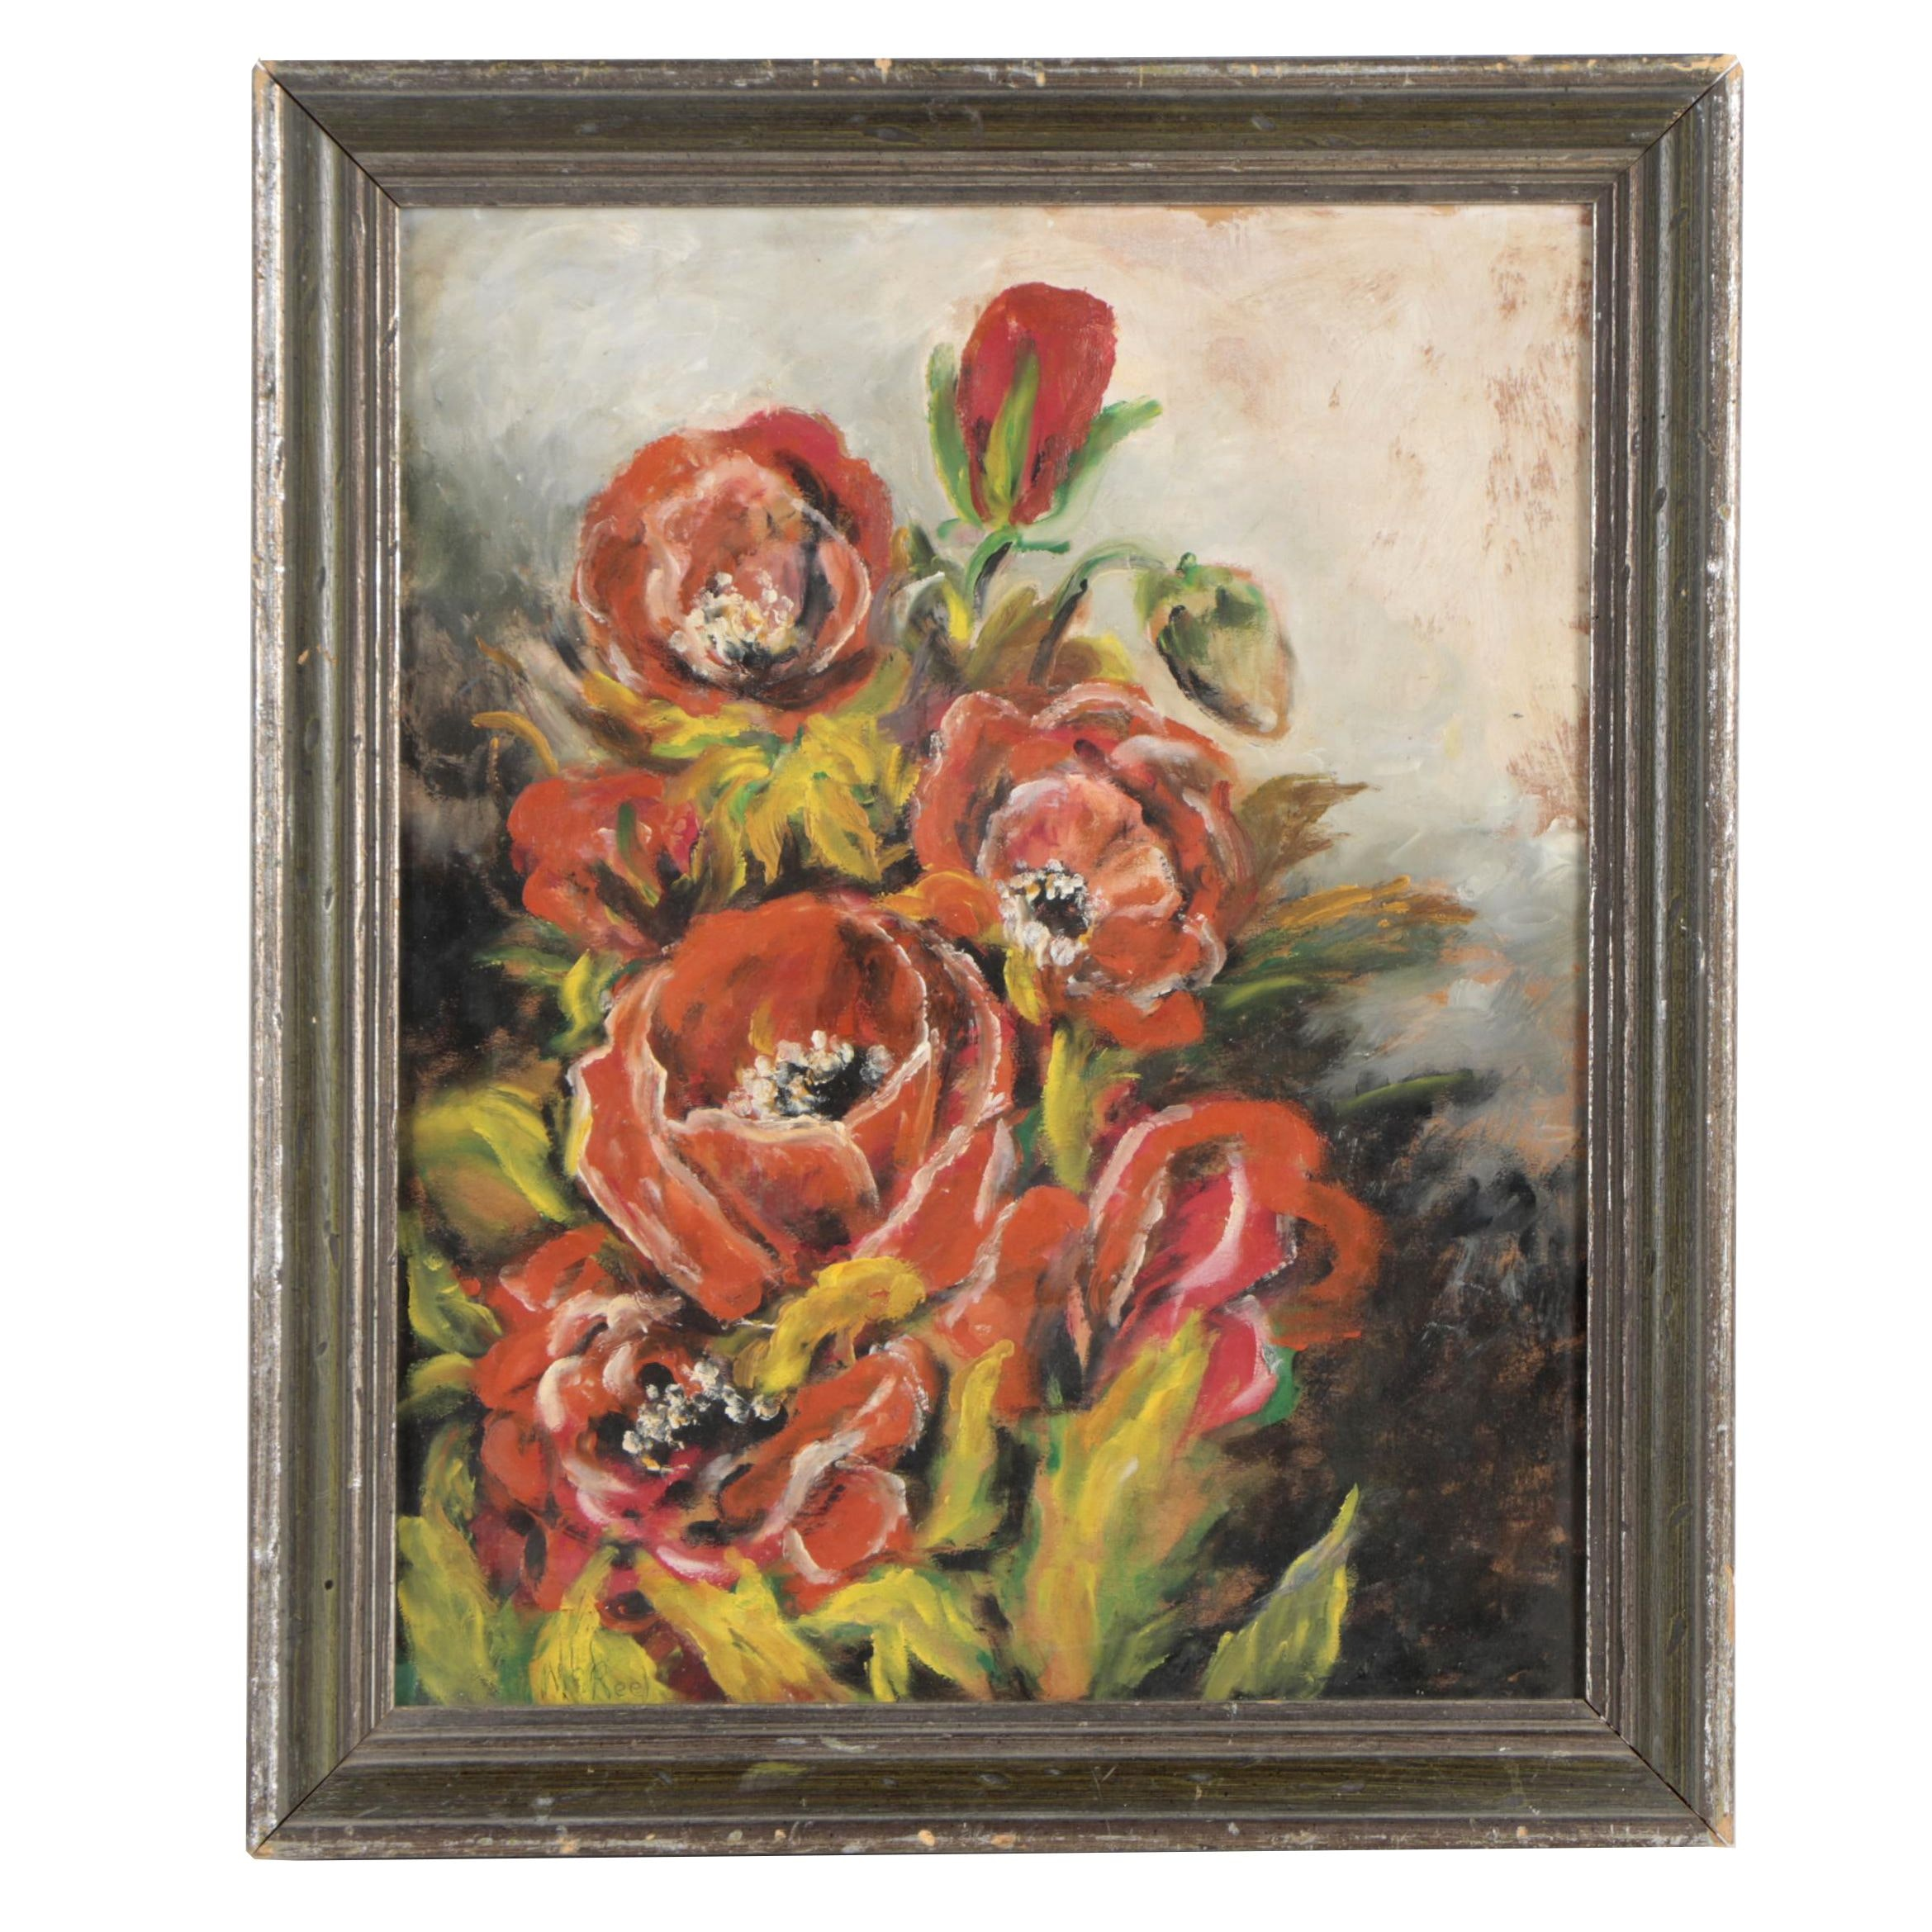 Vintage Still Life Oil Painting Attributed to McReel